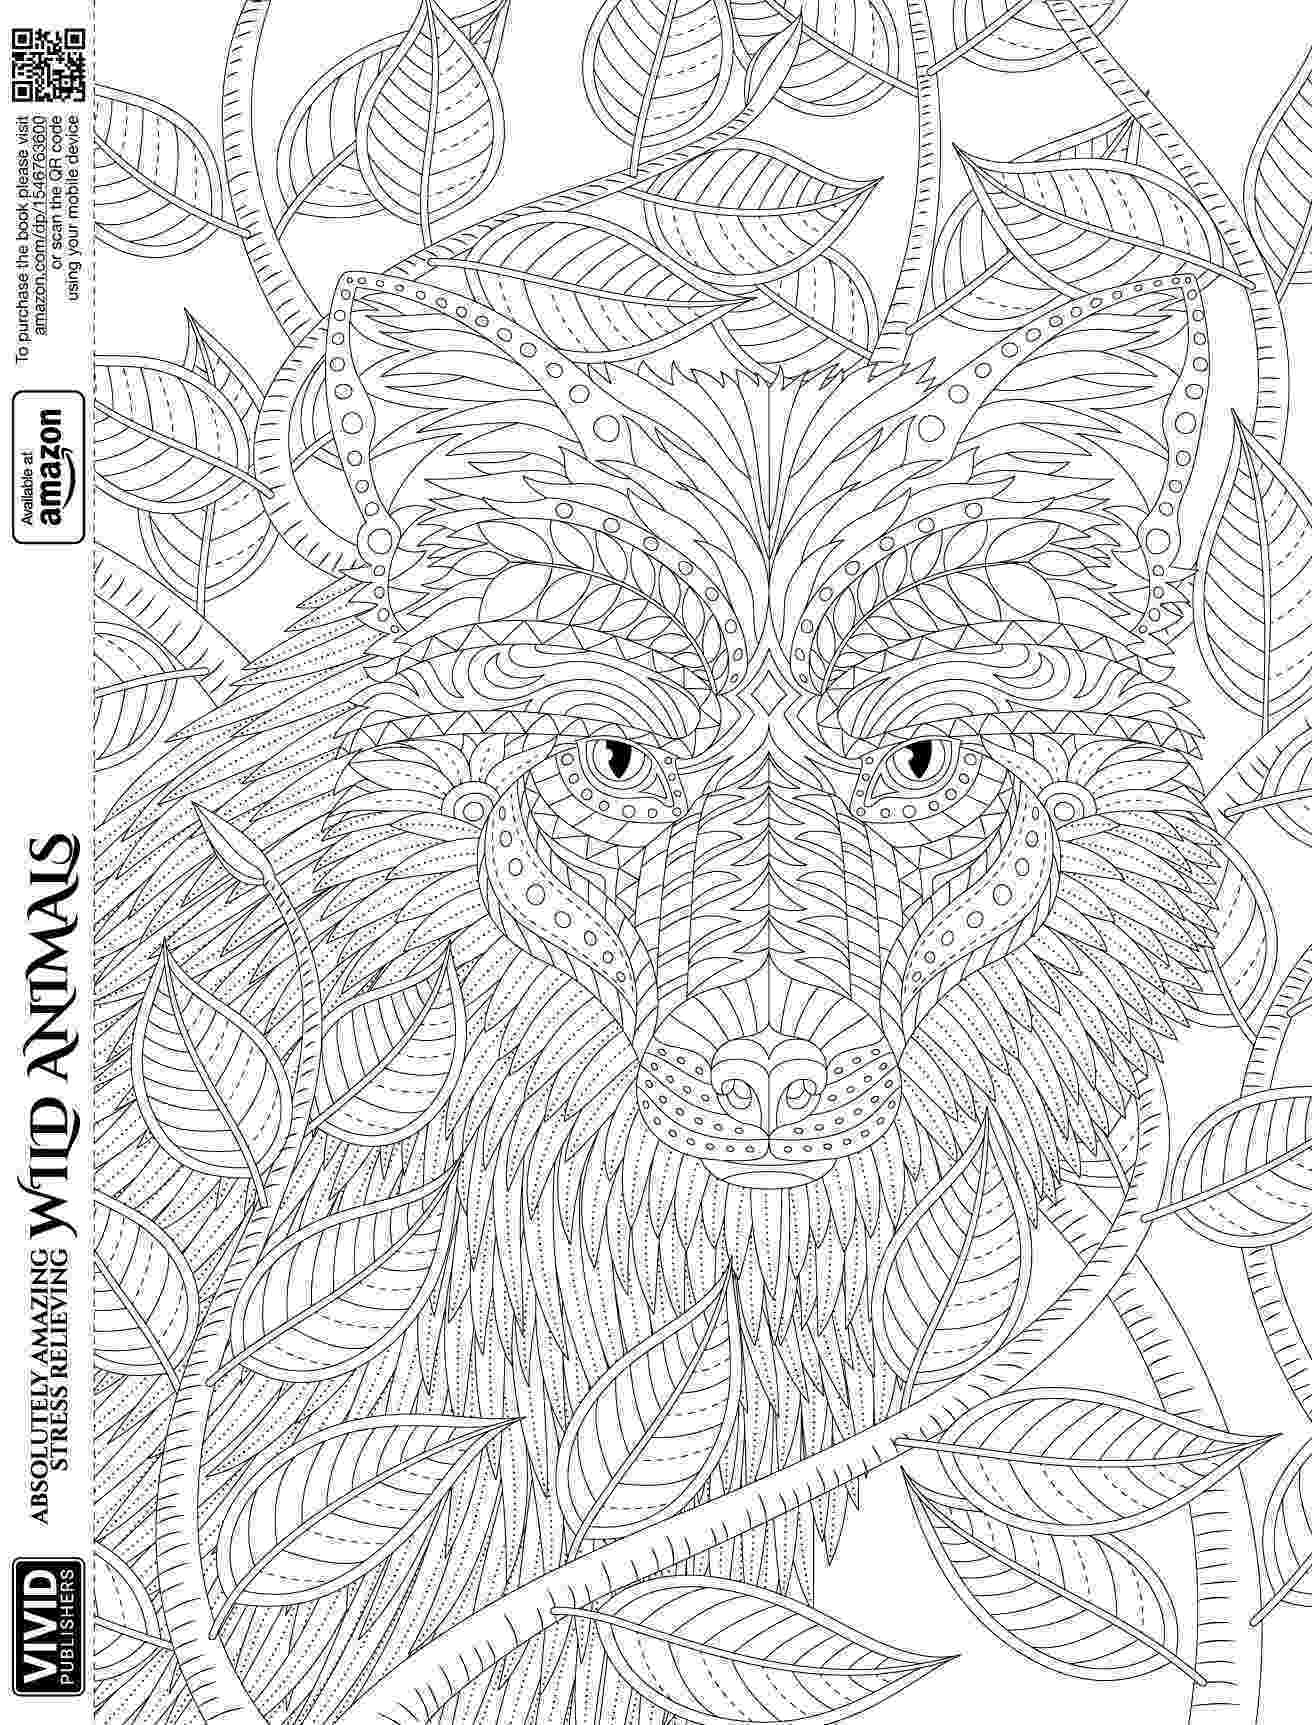 red fox coloring page fox coloring pages coloring pages to download and print fox red page coloring